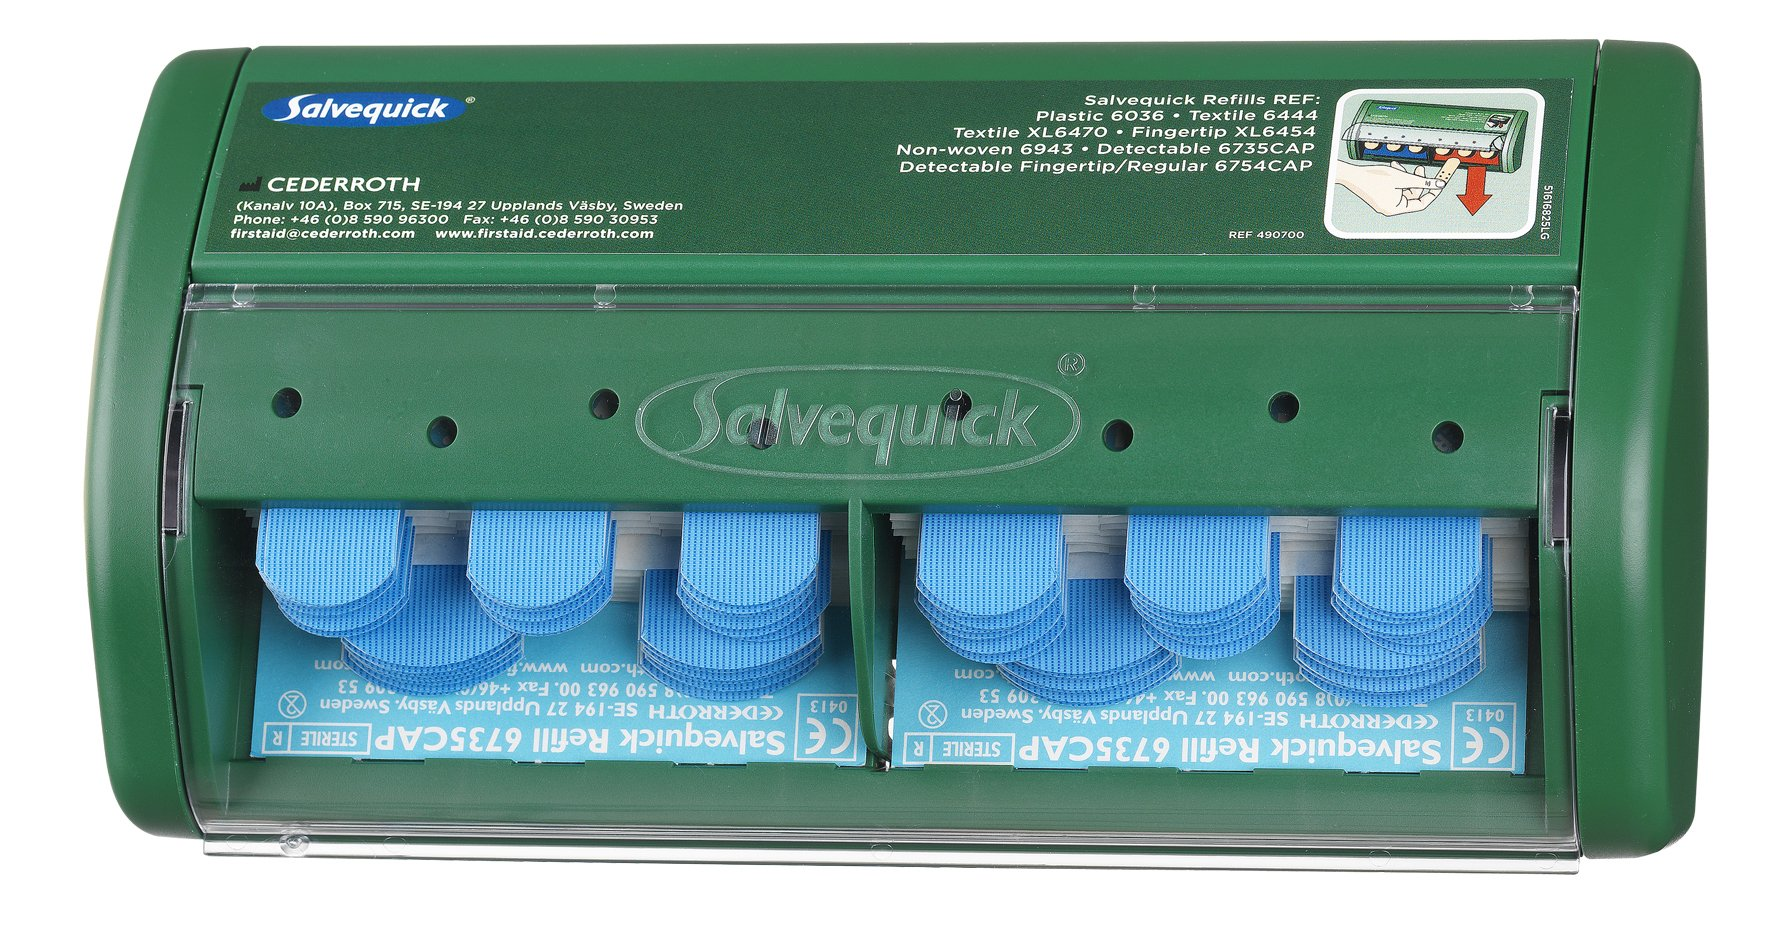 Cederroth 490750 Salvequick Detectable Adhesive Bandage Dispenser, Blue